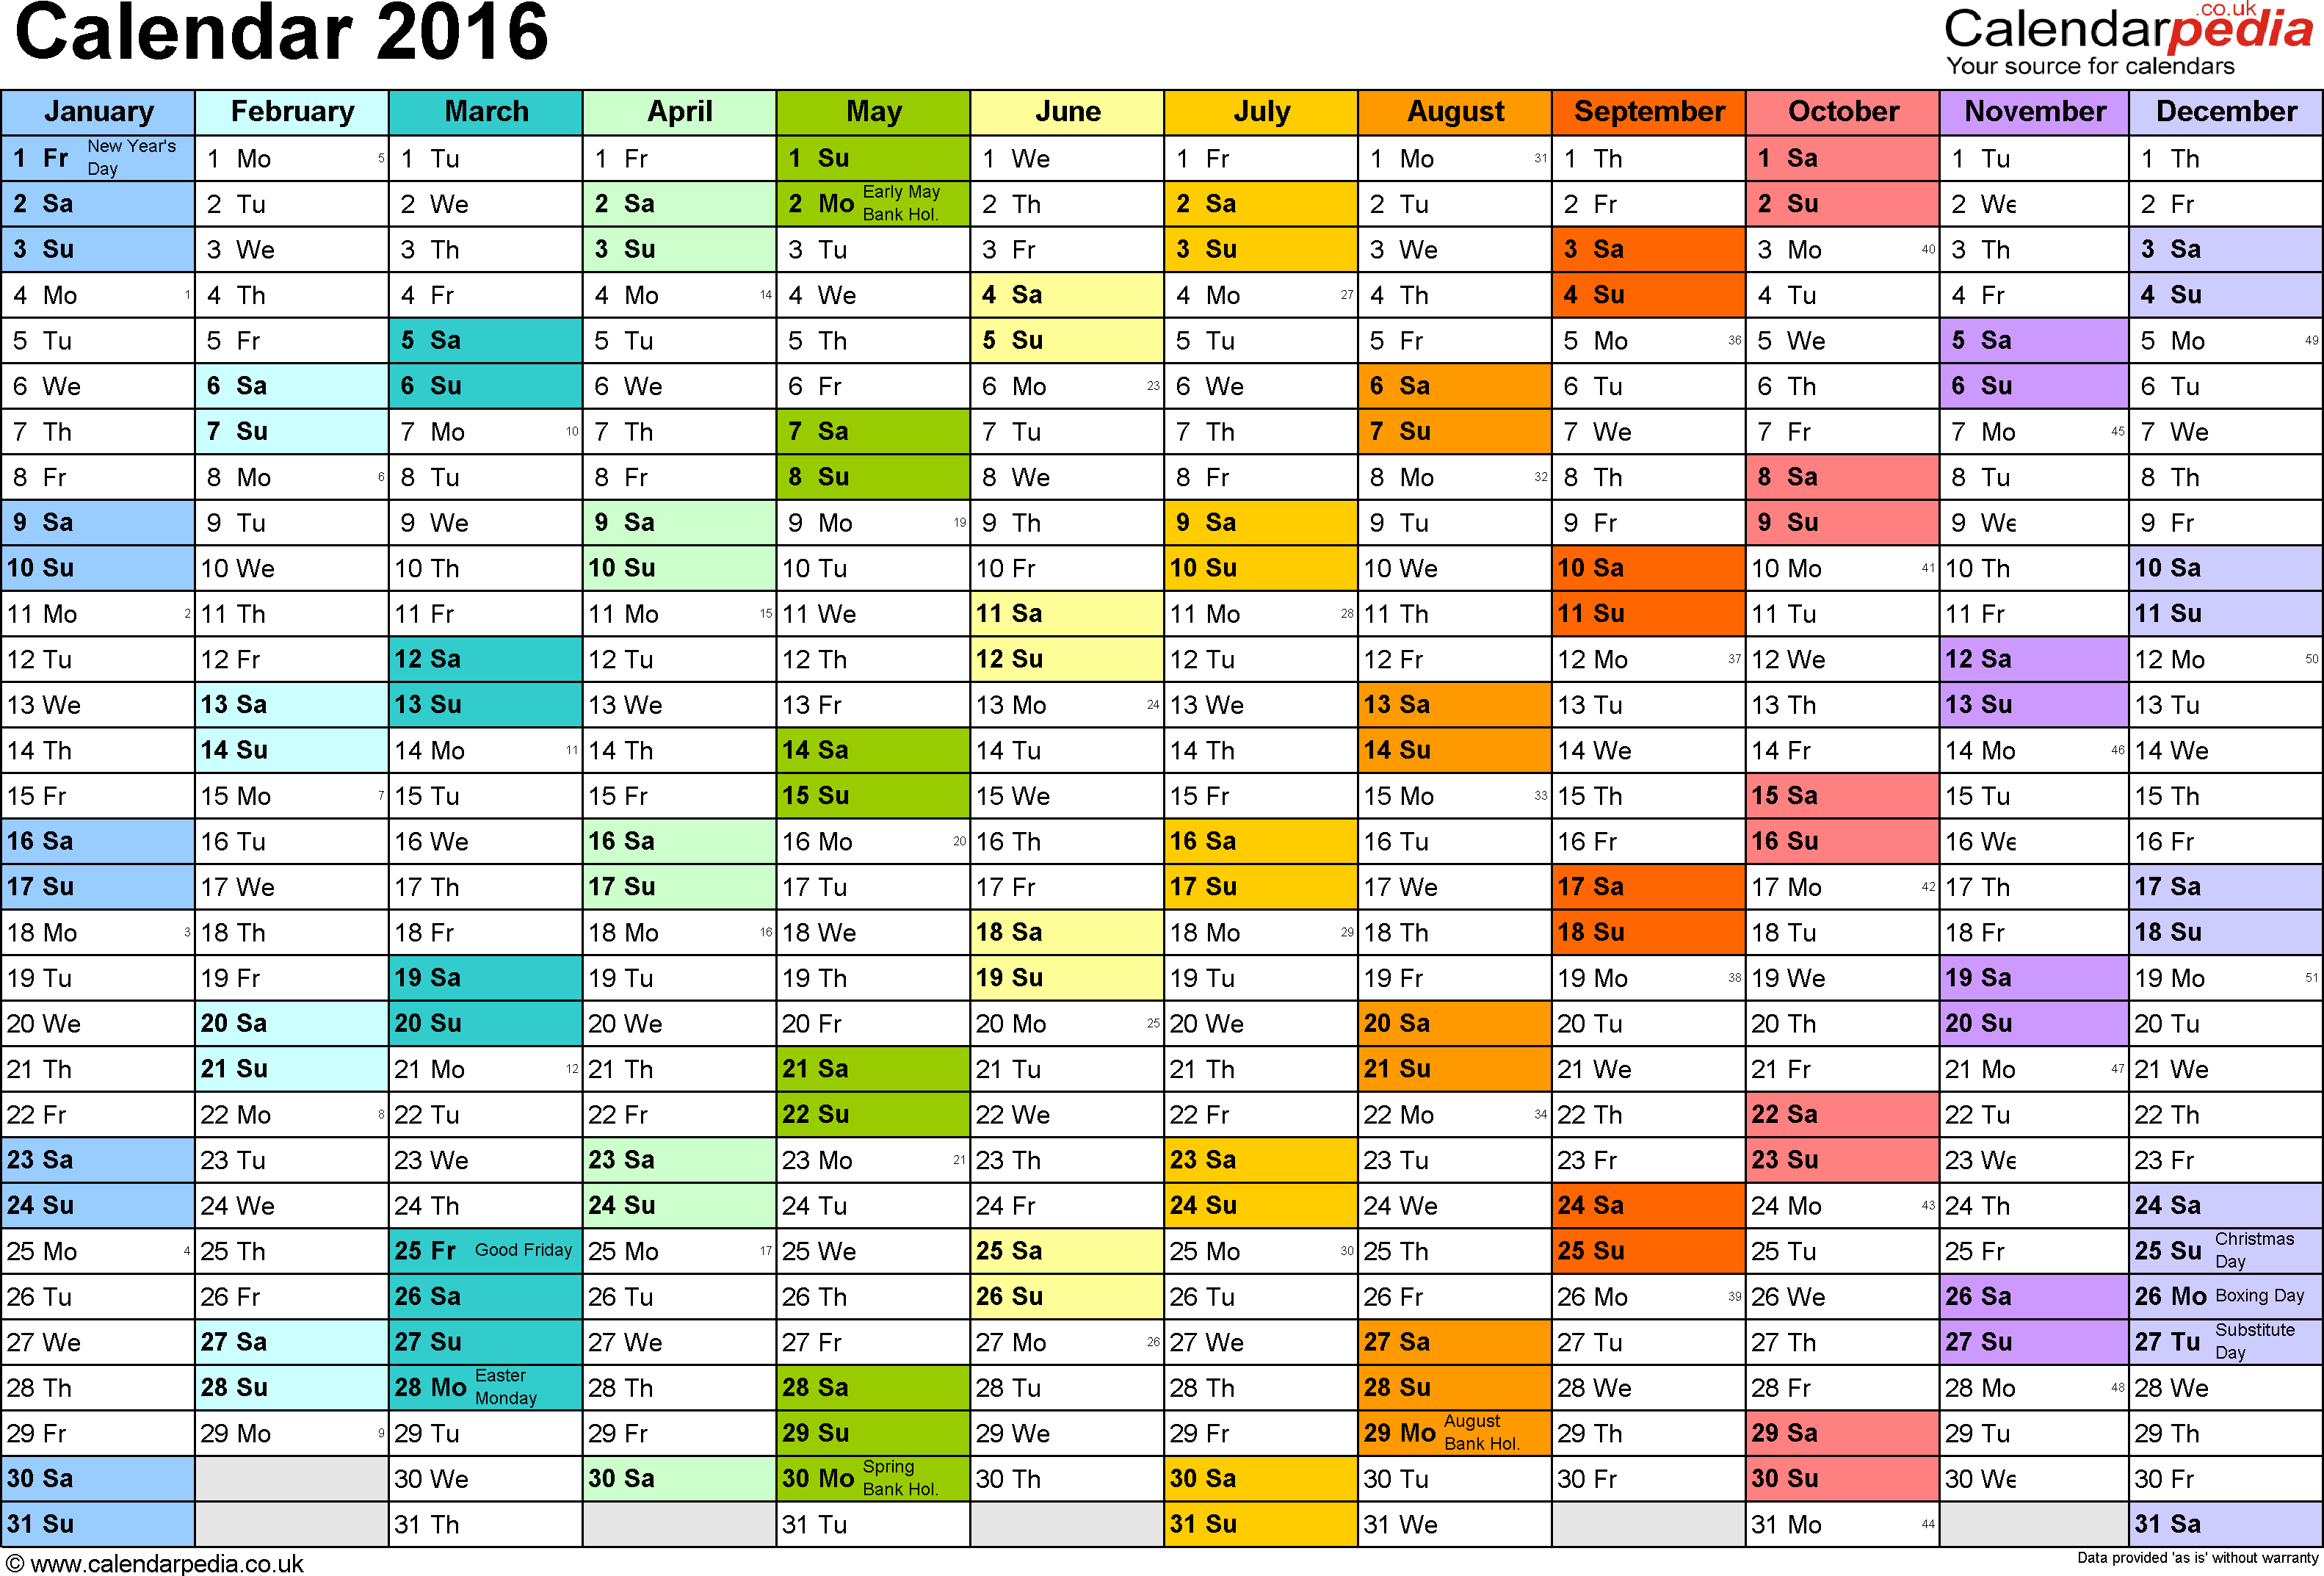 Calendar 2016 (UK) - 16 free printable PDF templates